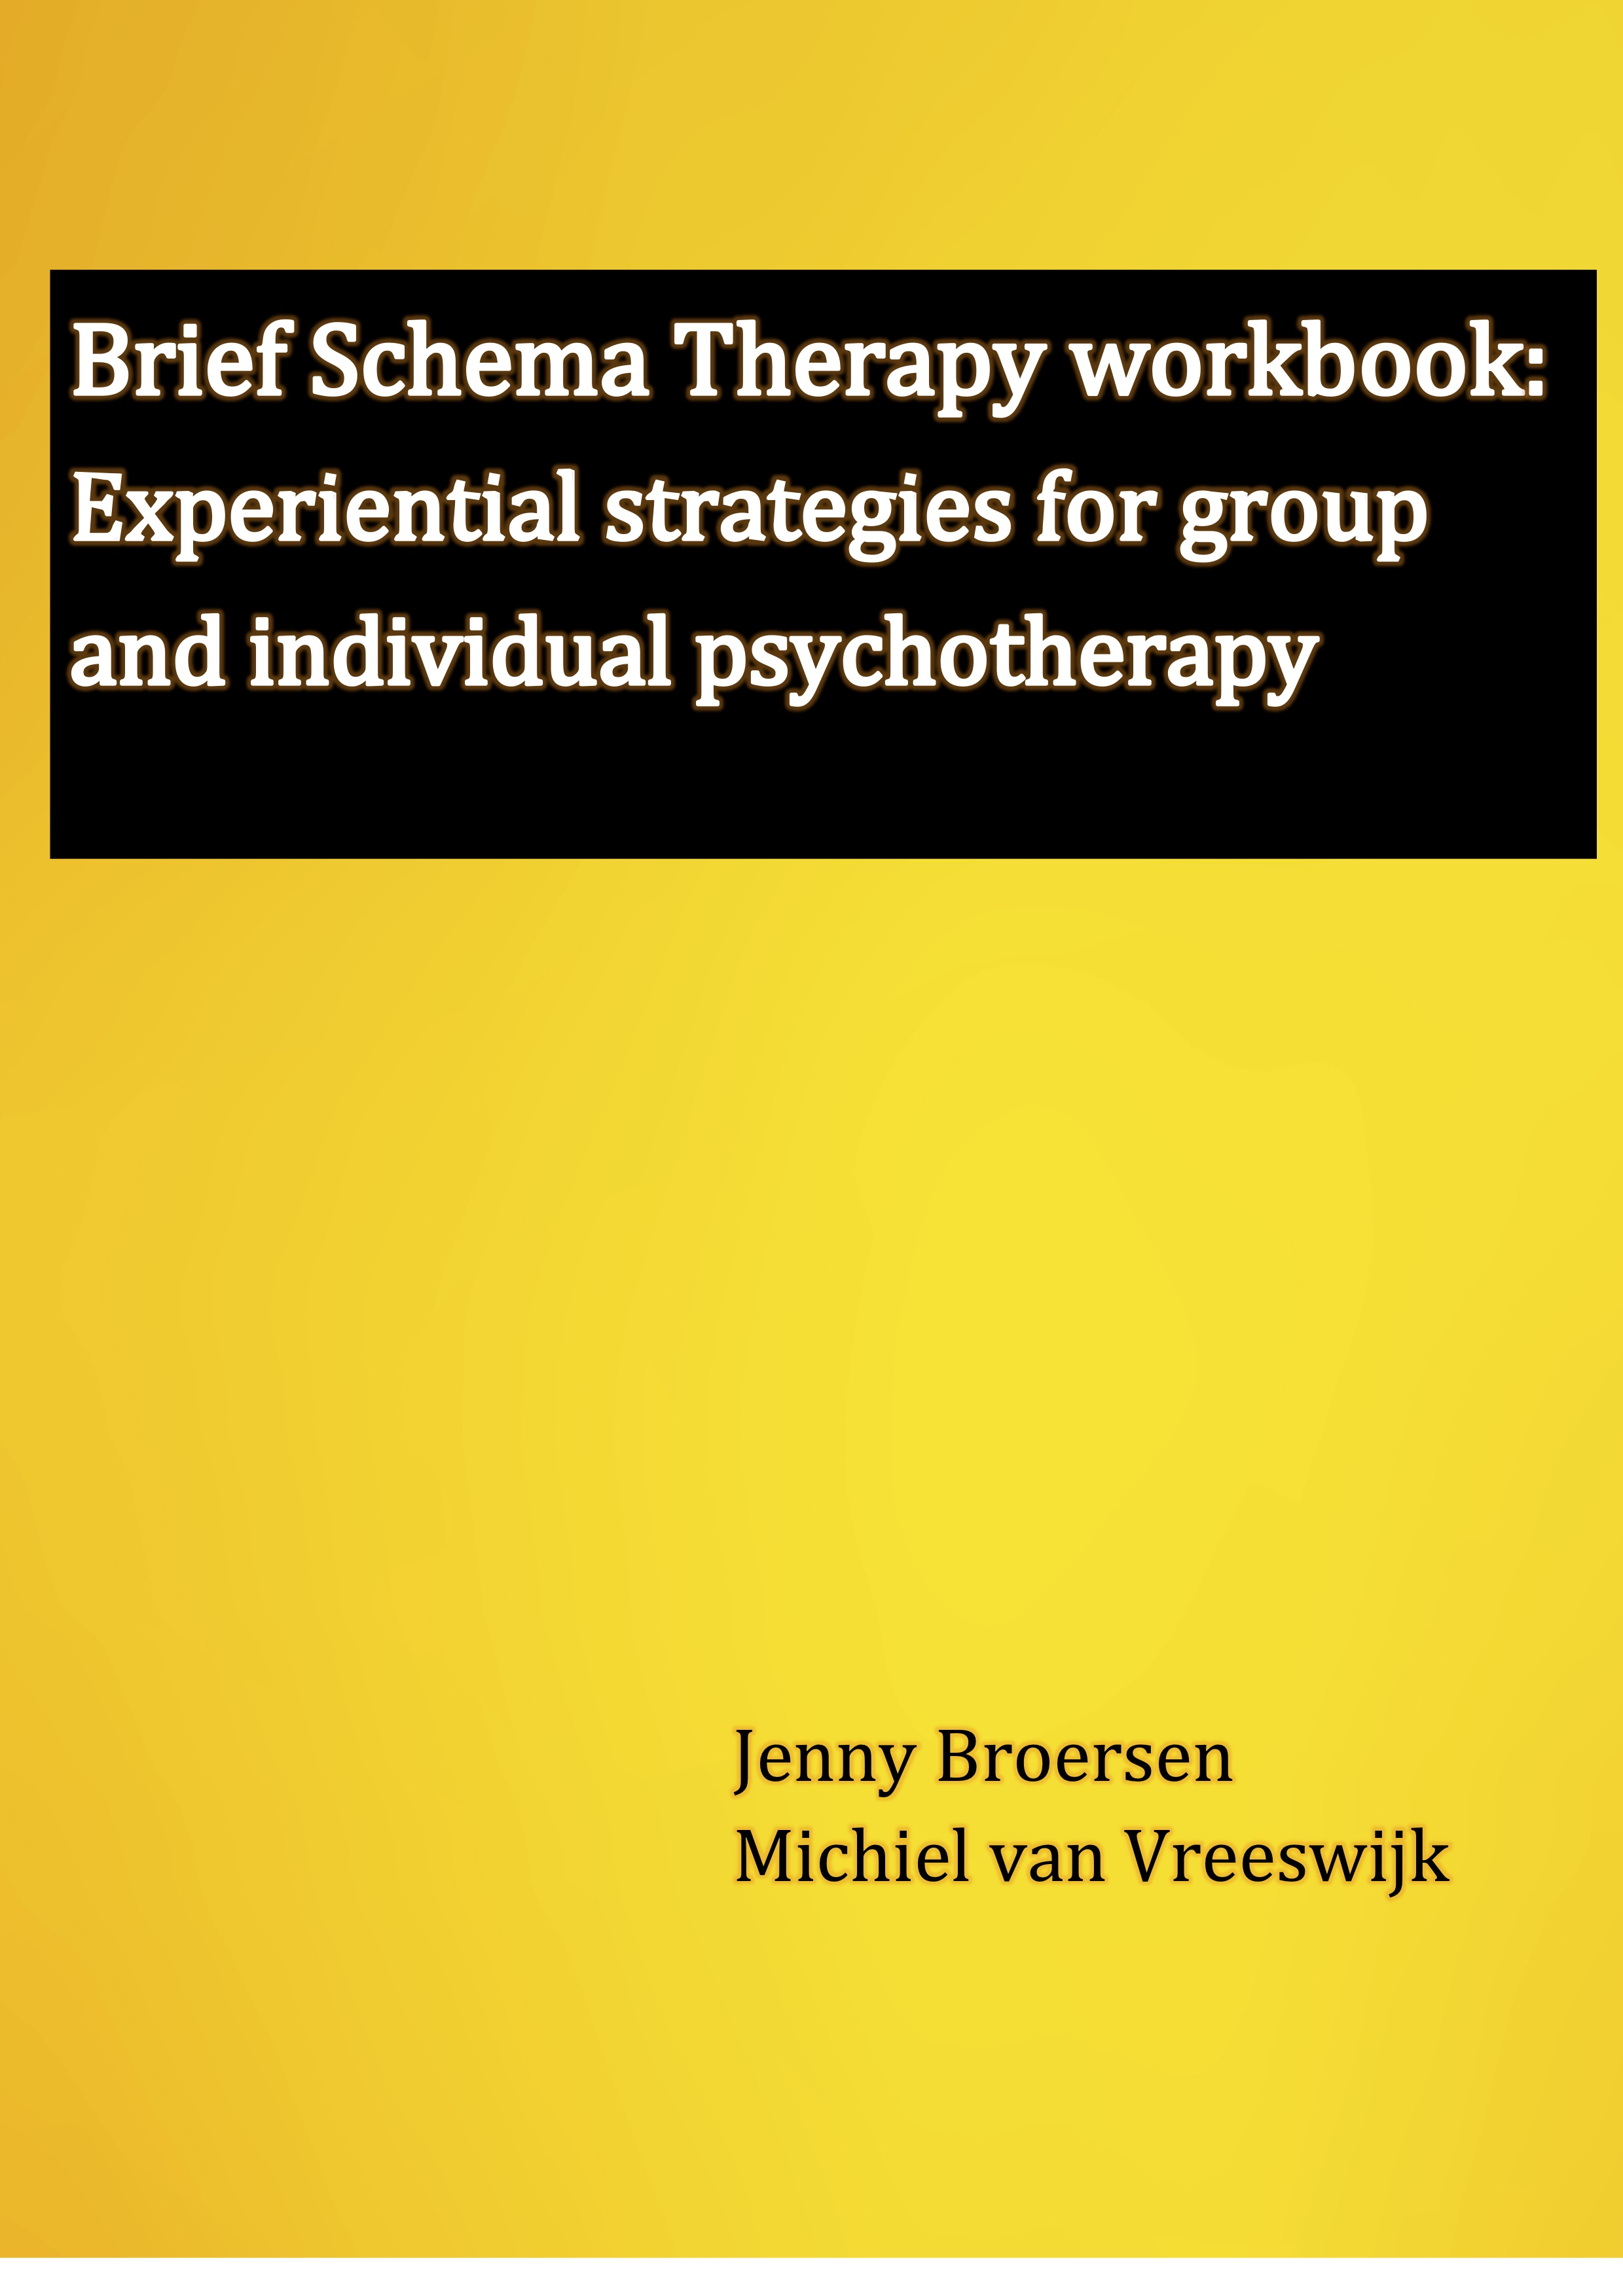 Brief Schema Therapy Workbook: Experiential strategies for group and individual psychotherapy